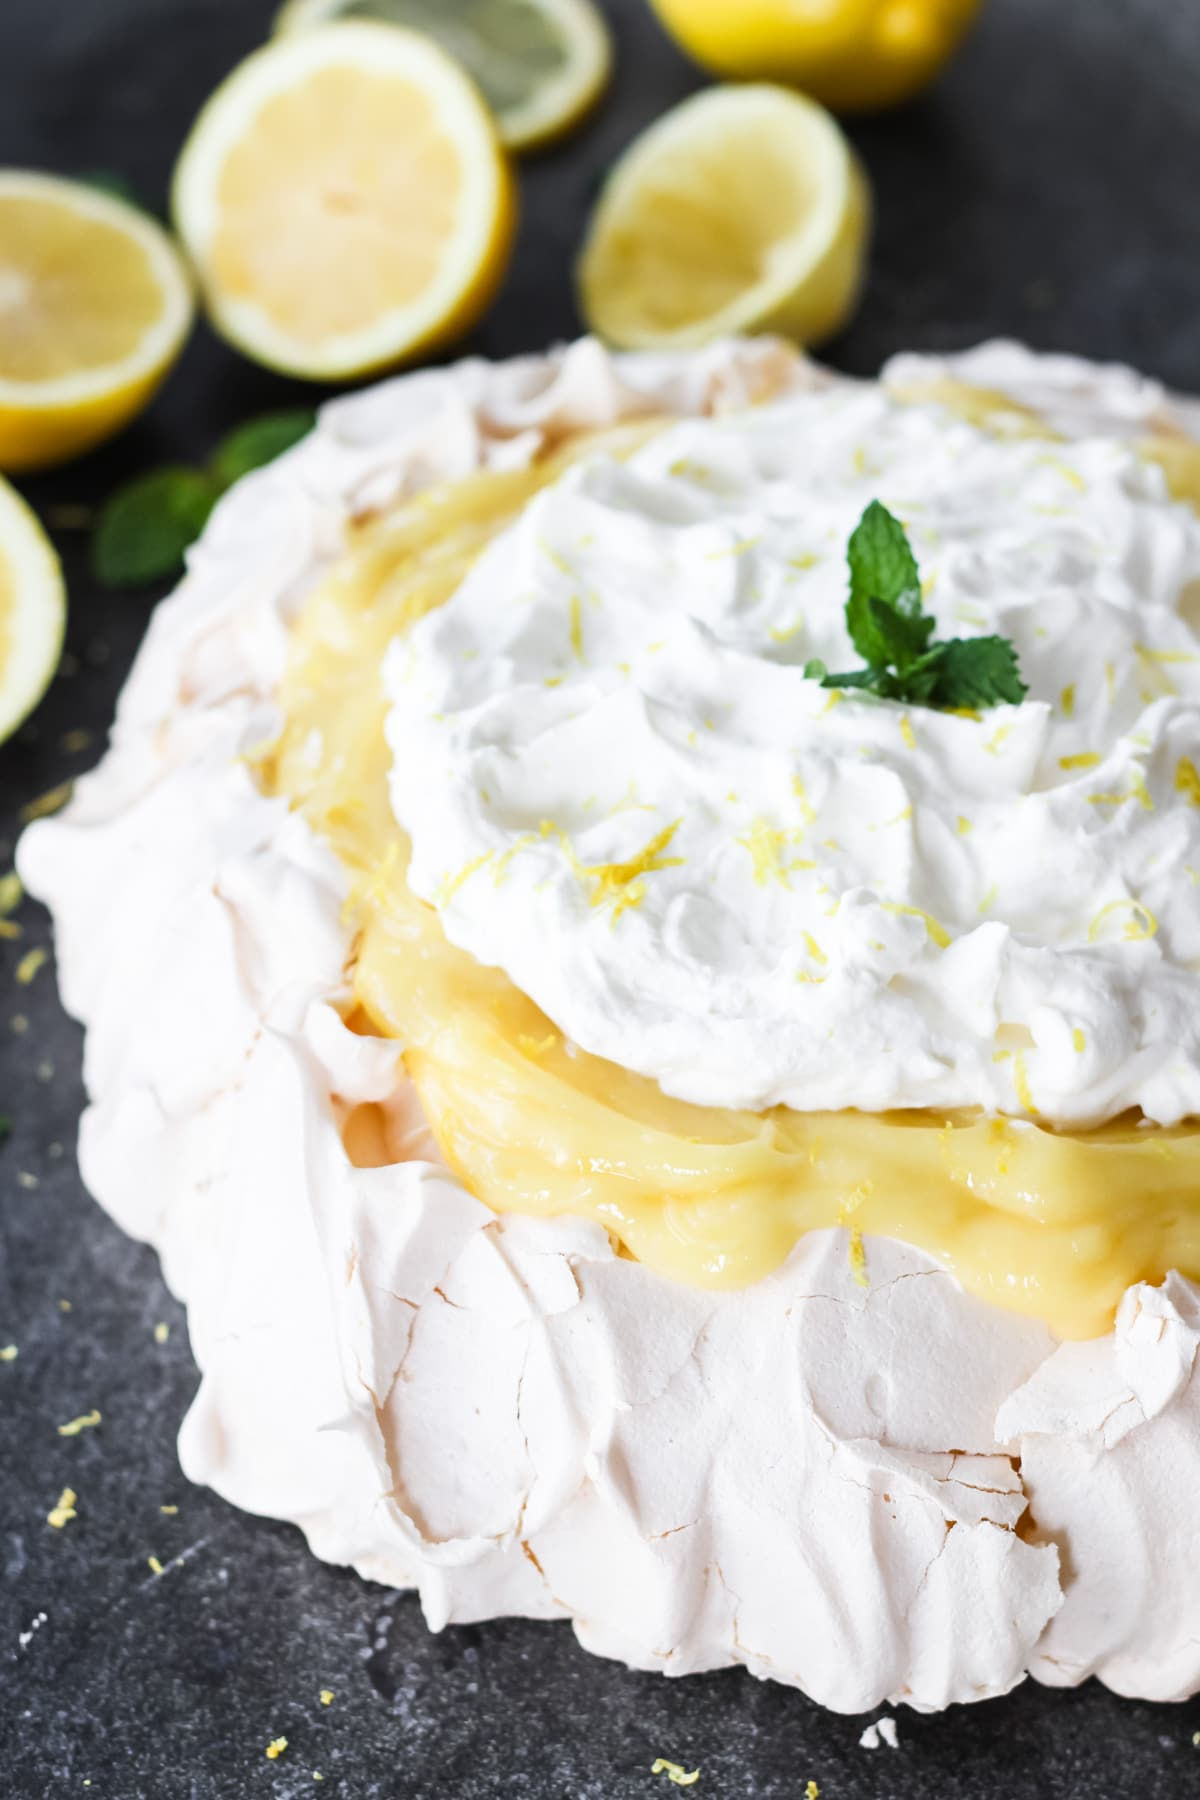 a side view of a lemon pavlova with lemon curd and whipped cream. in the background are sliced lemons